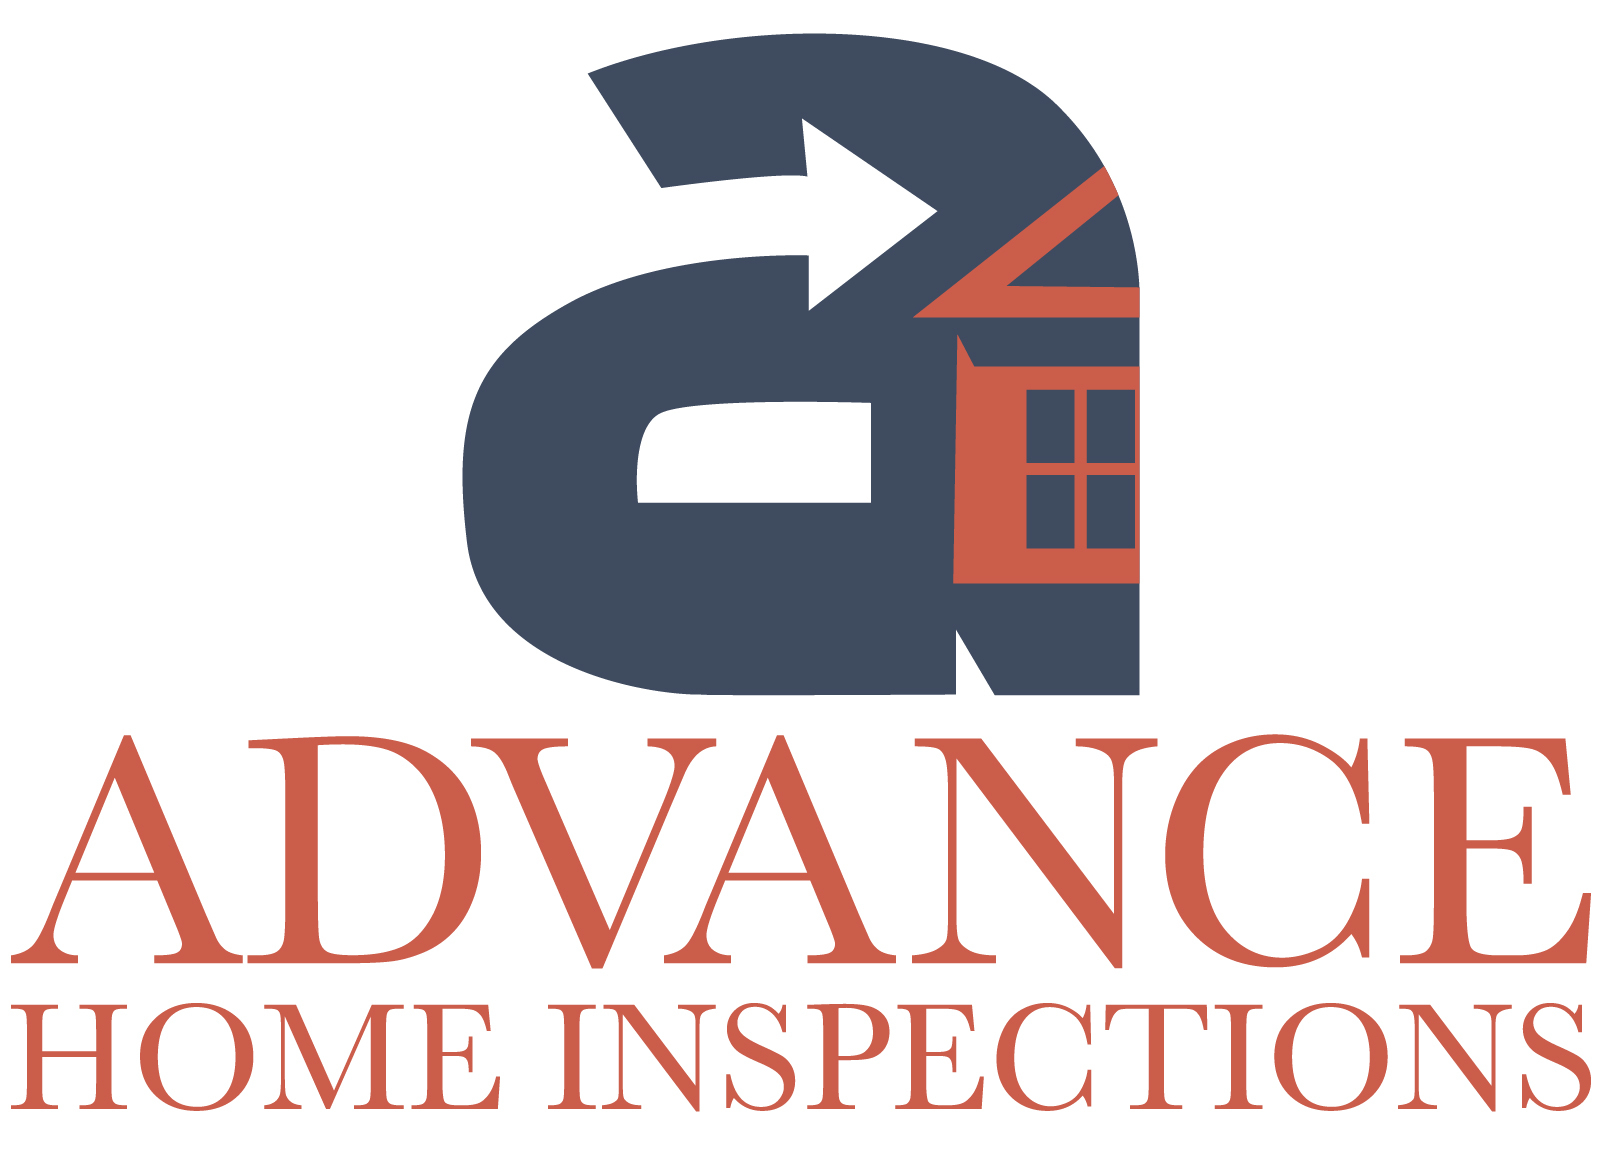 Advance home inspections logo new 01